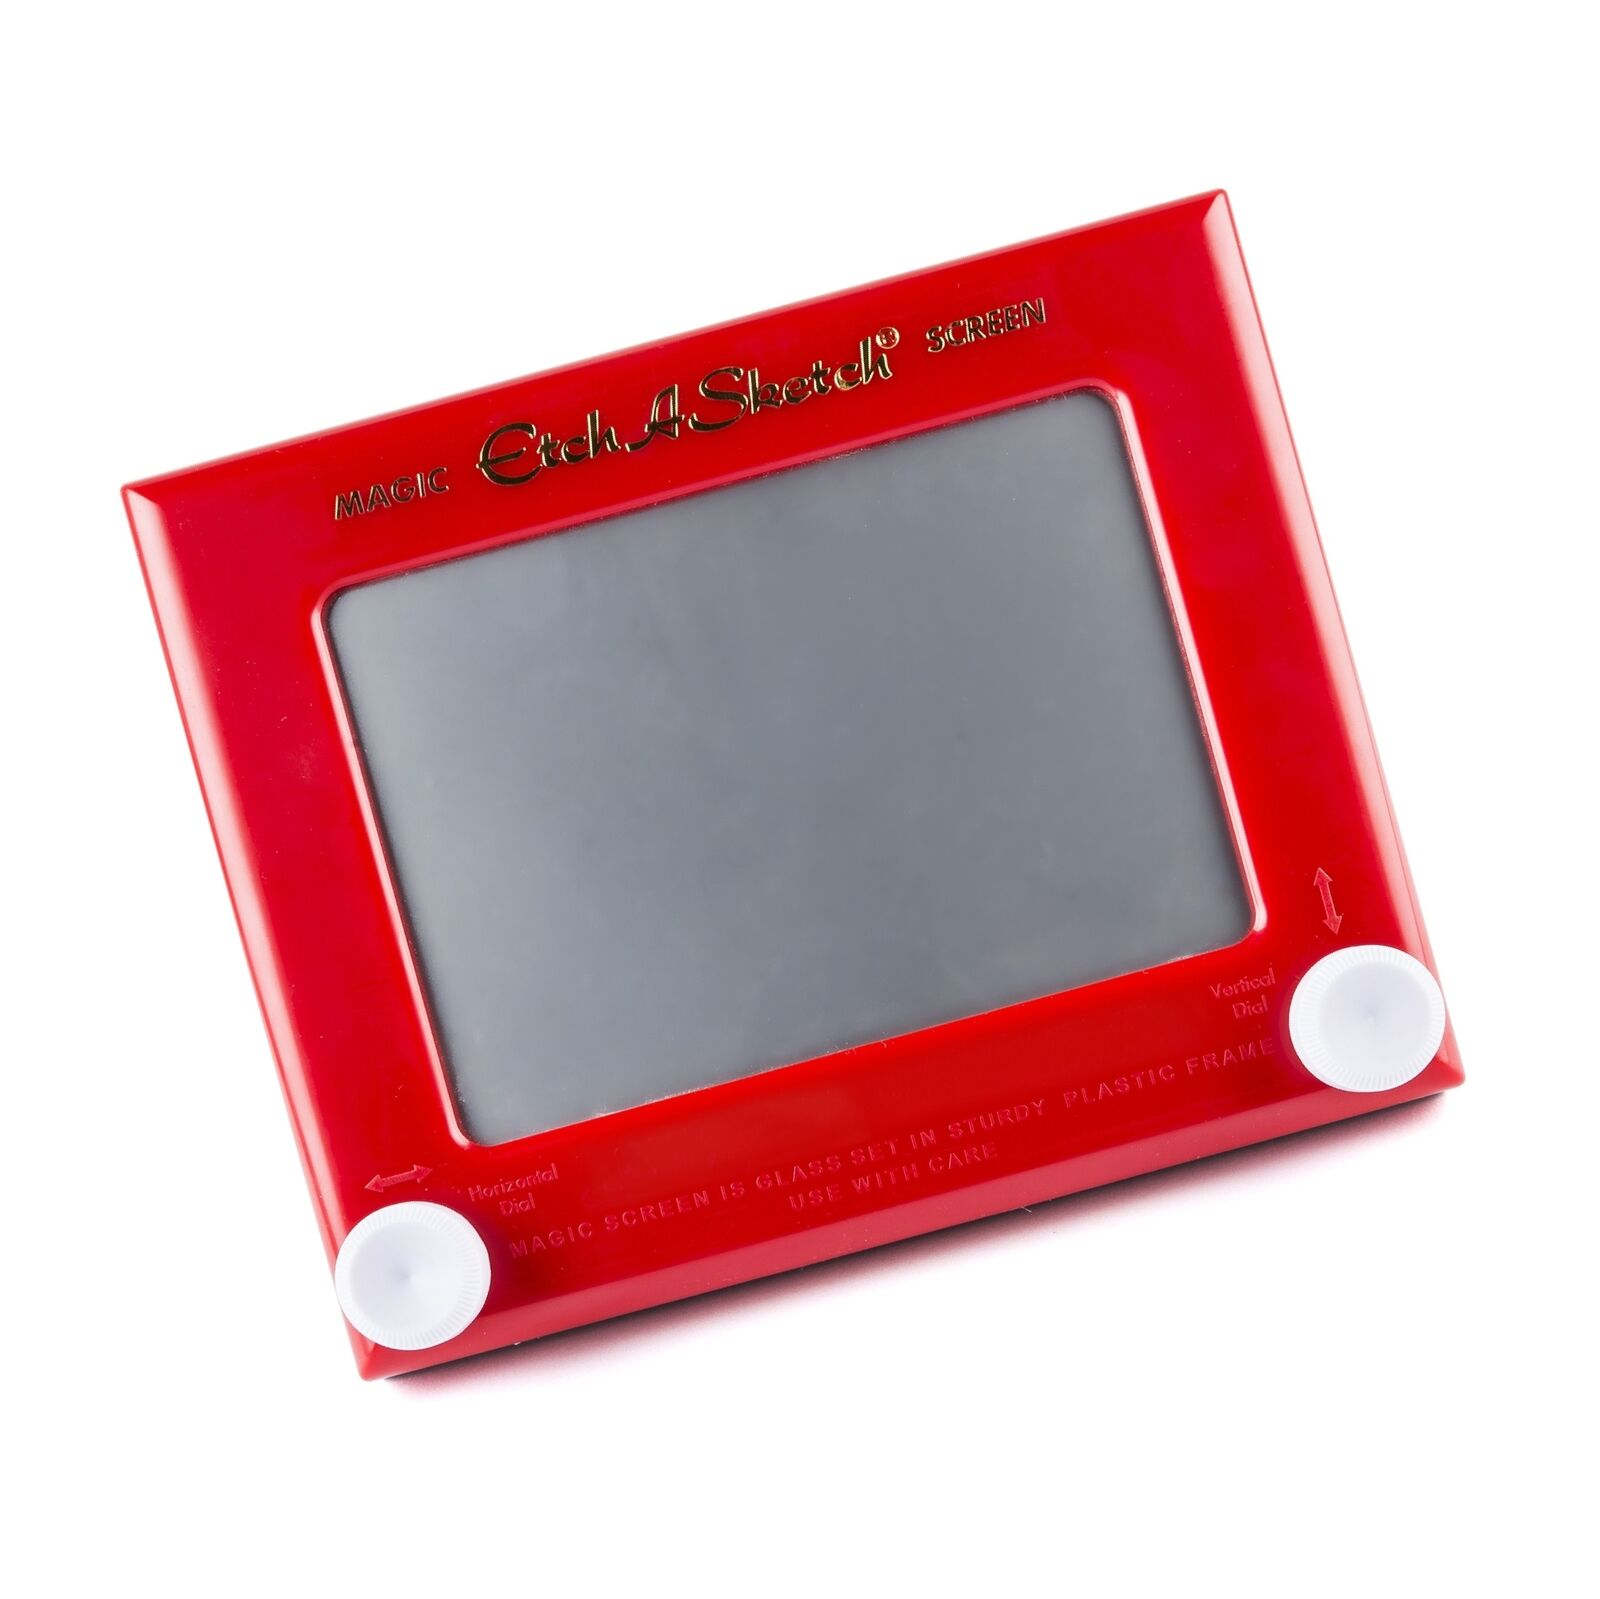 Etch A Sketch Classic for Ages 3 and Up 60th Anniversary Diamond Edition with Magic Screen